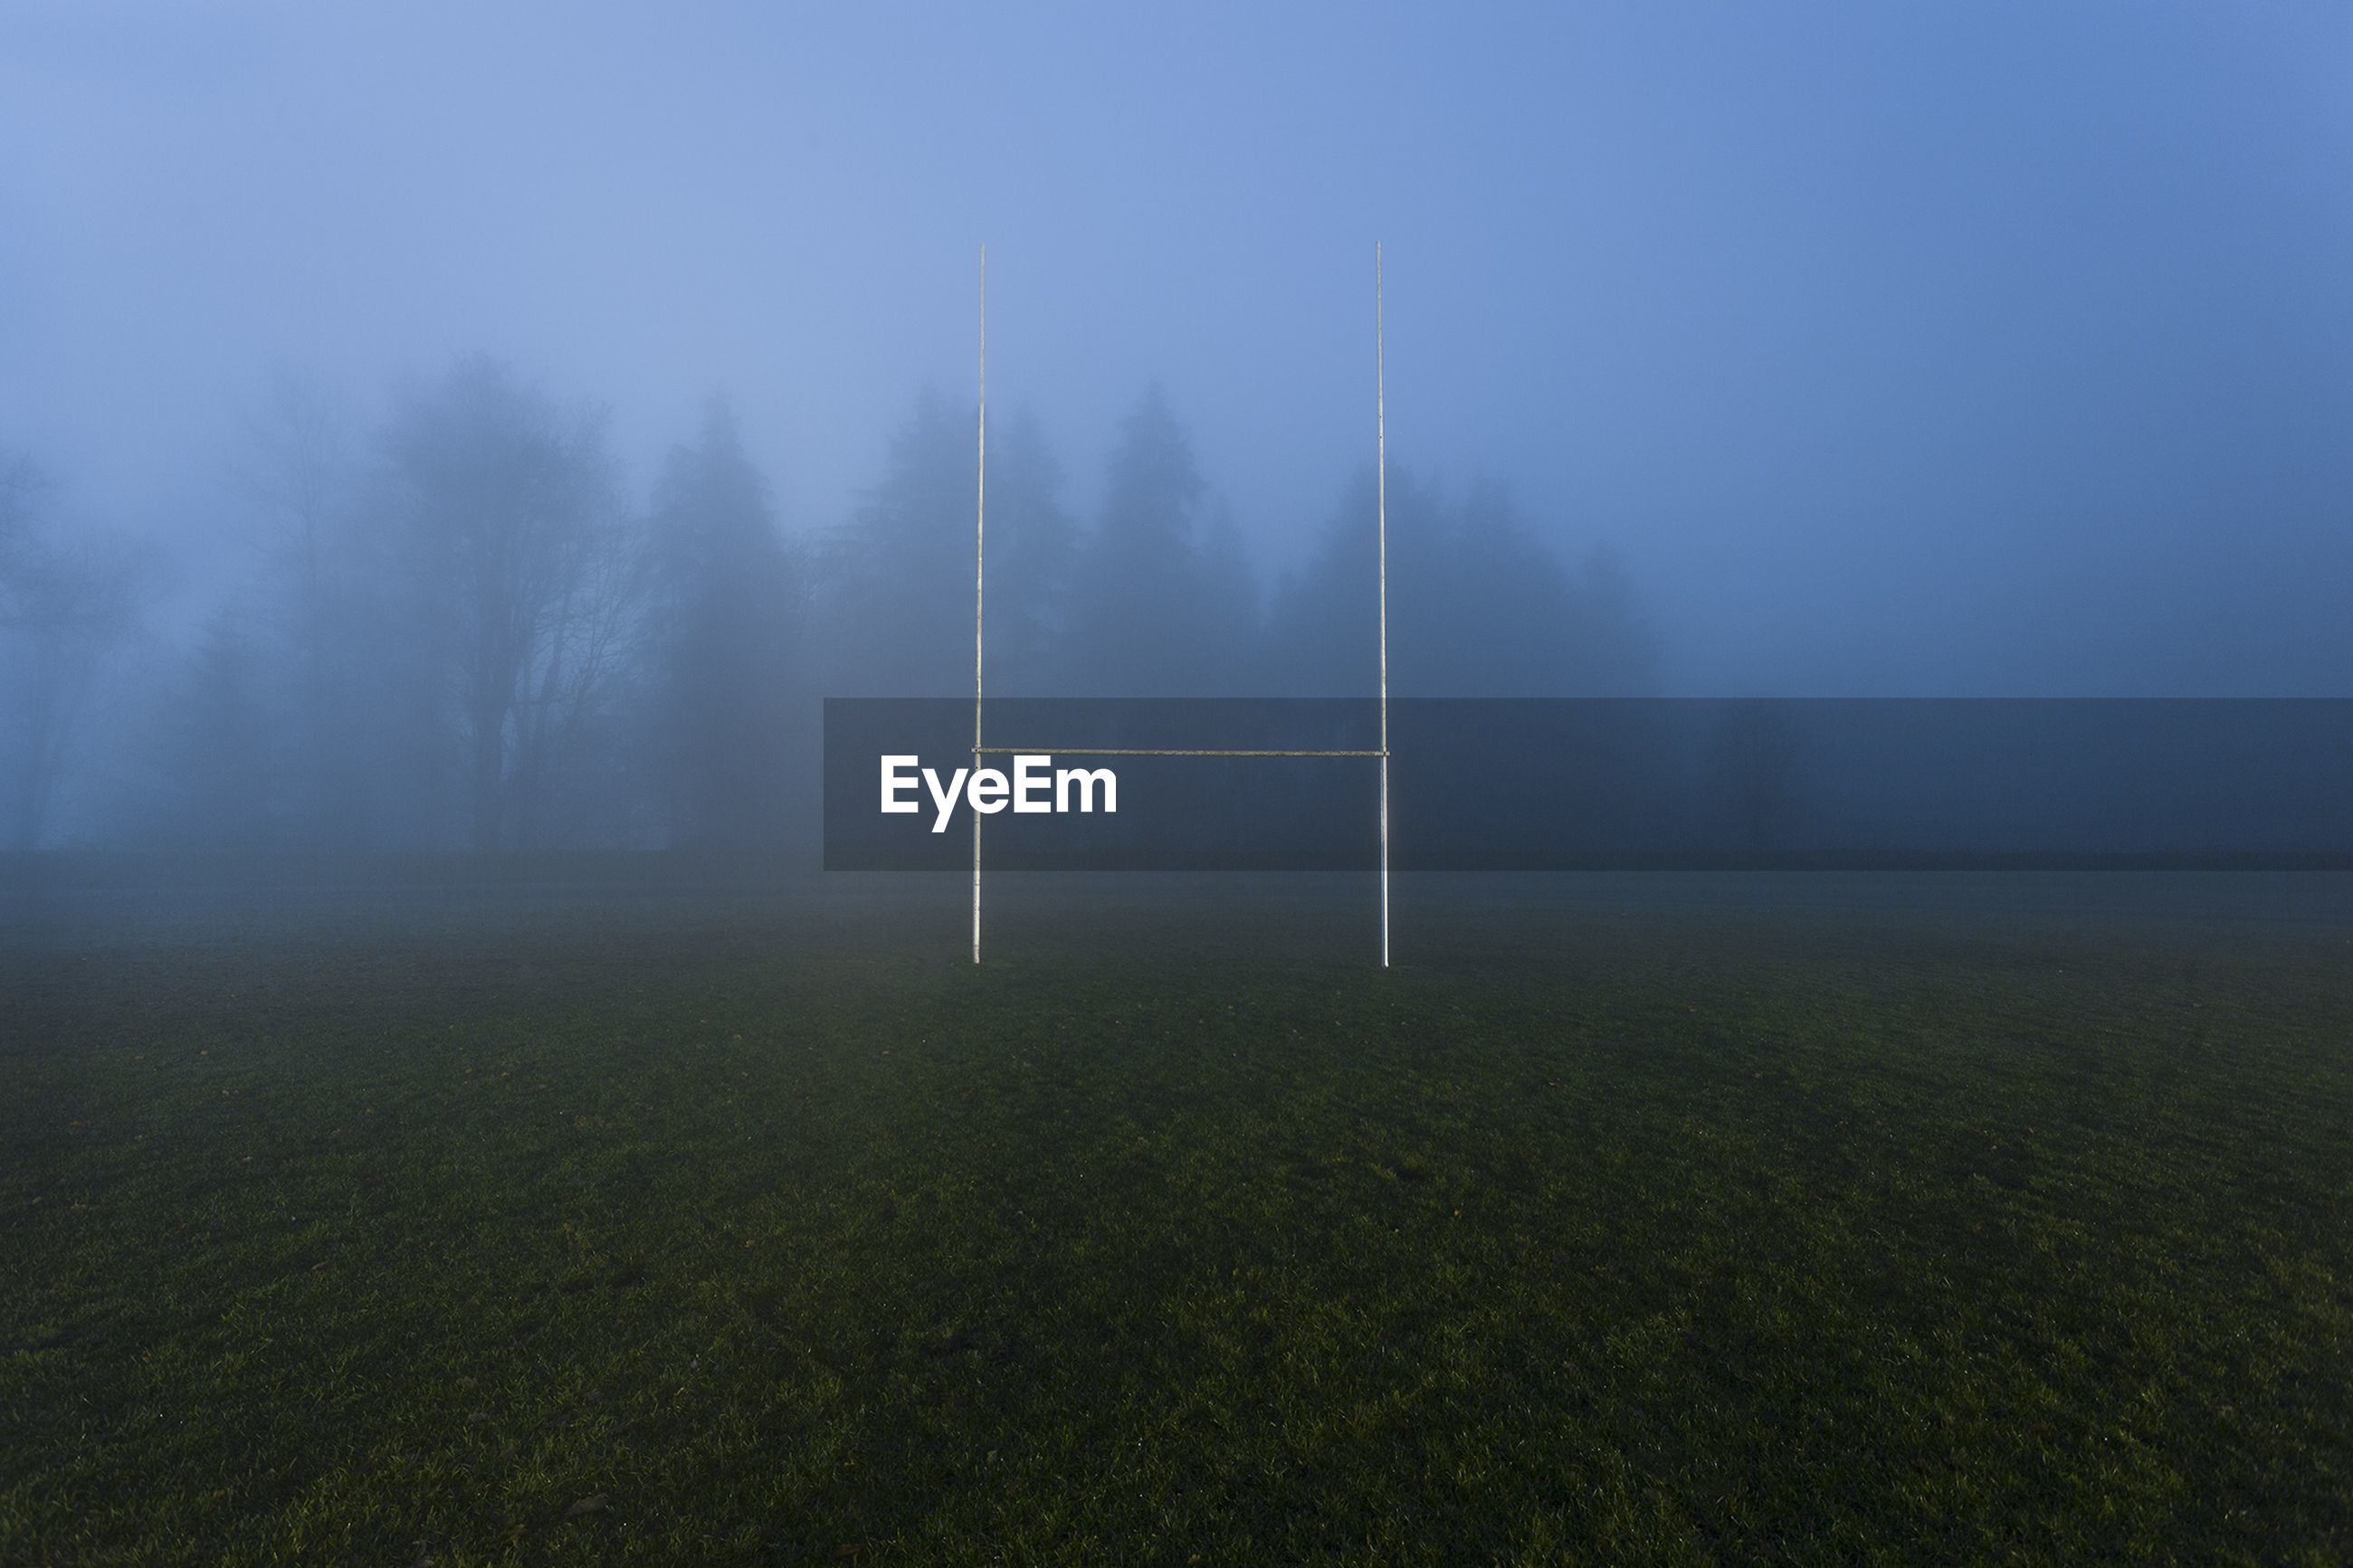 SCENIC VIEW OF FOGGY LANDSCAPE AGAINST SKY DURING WEATHER